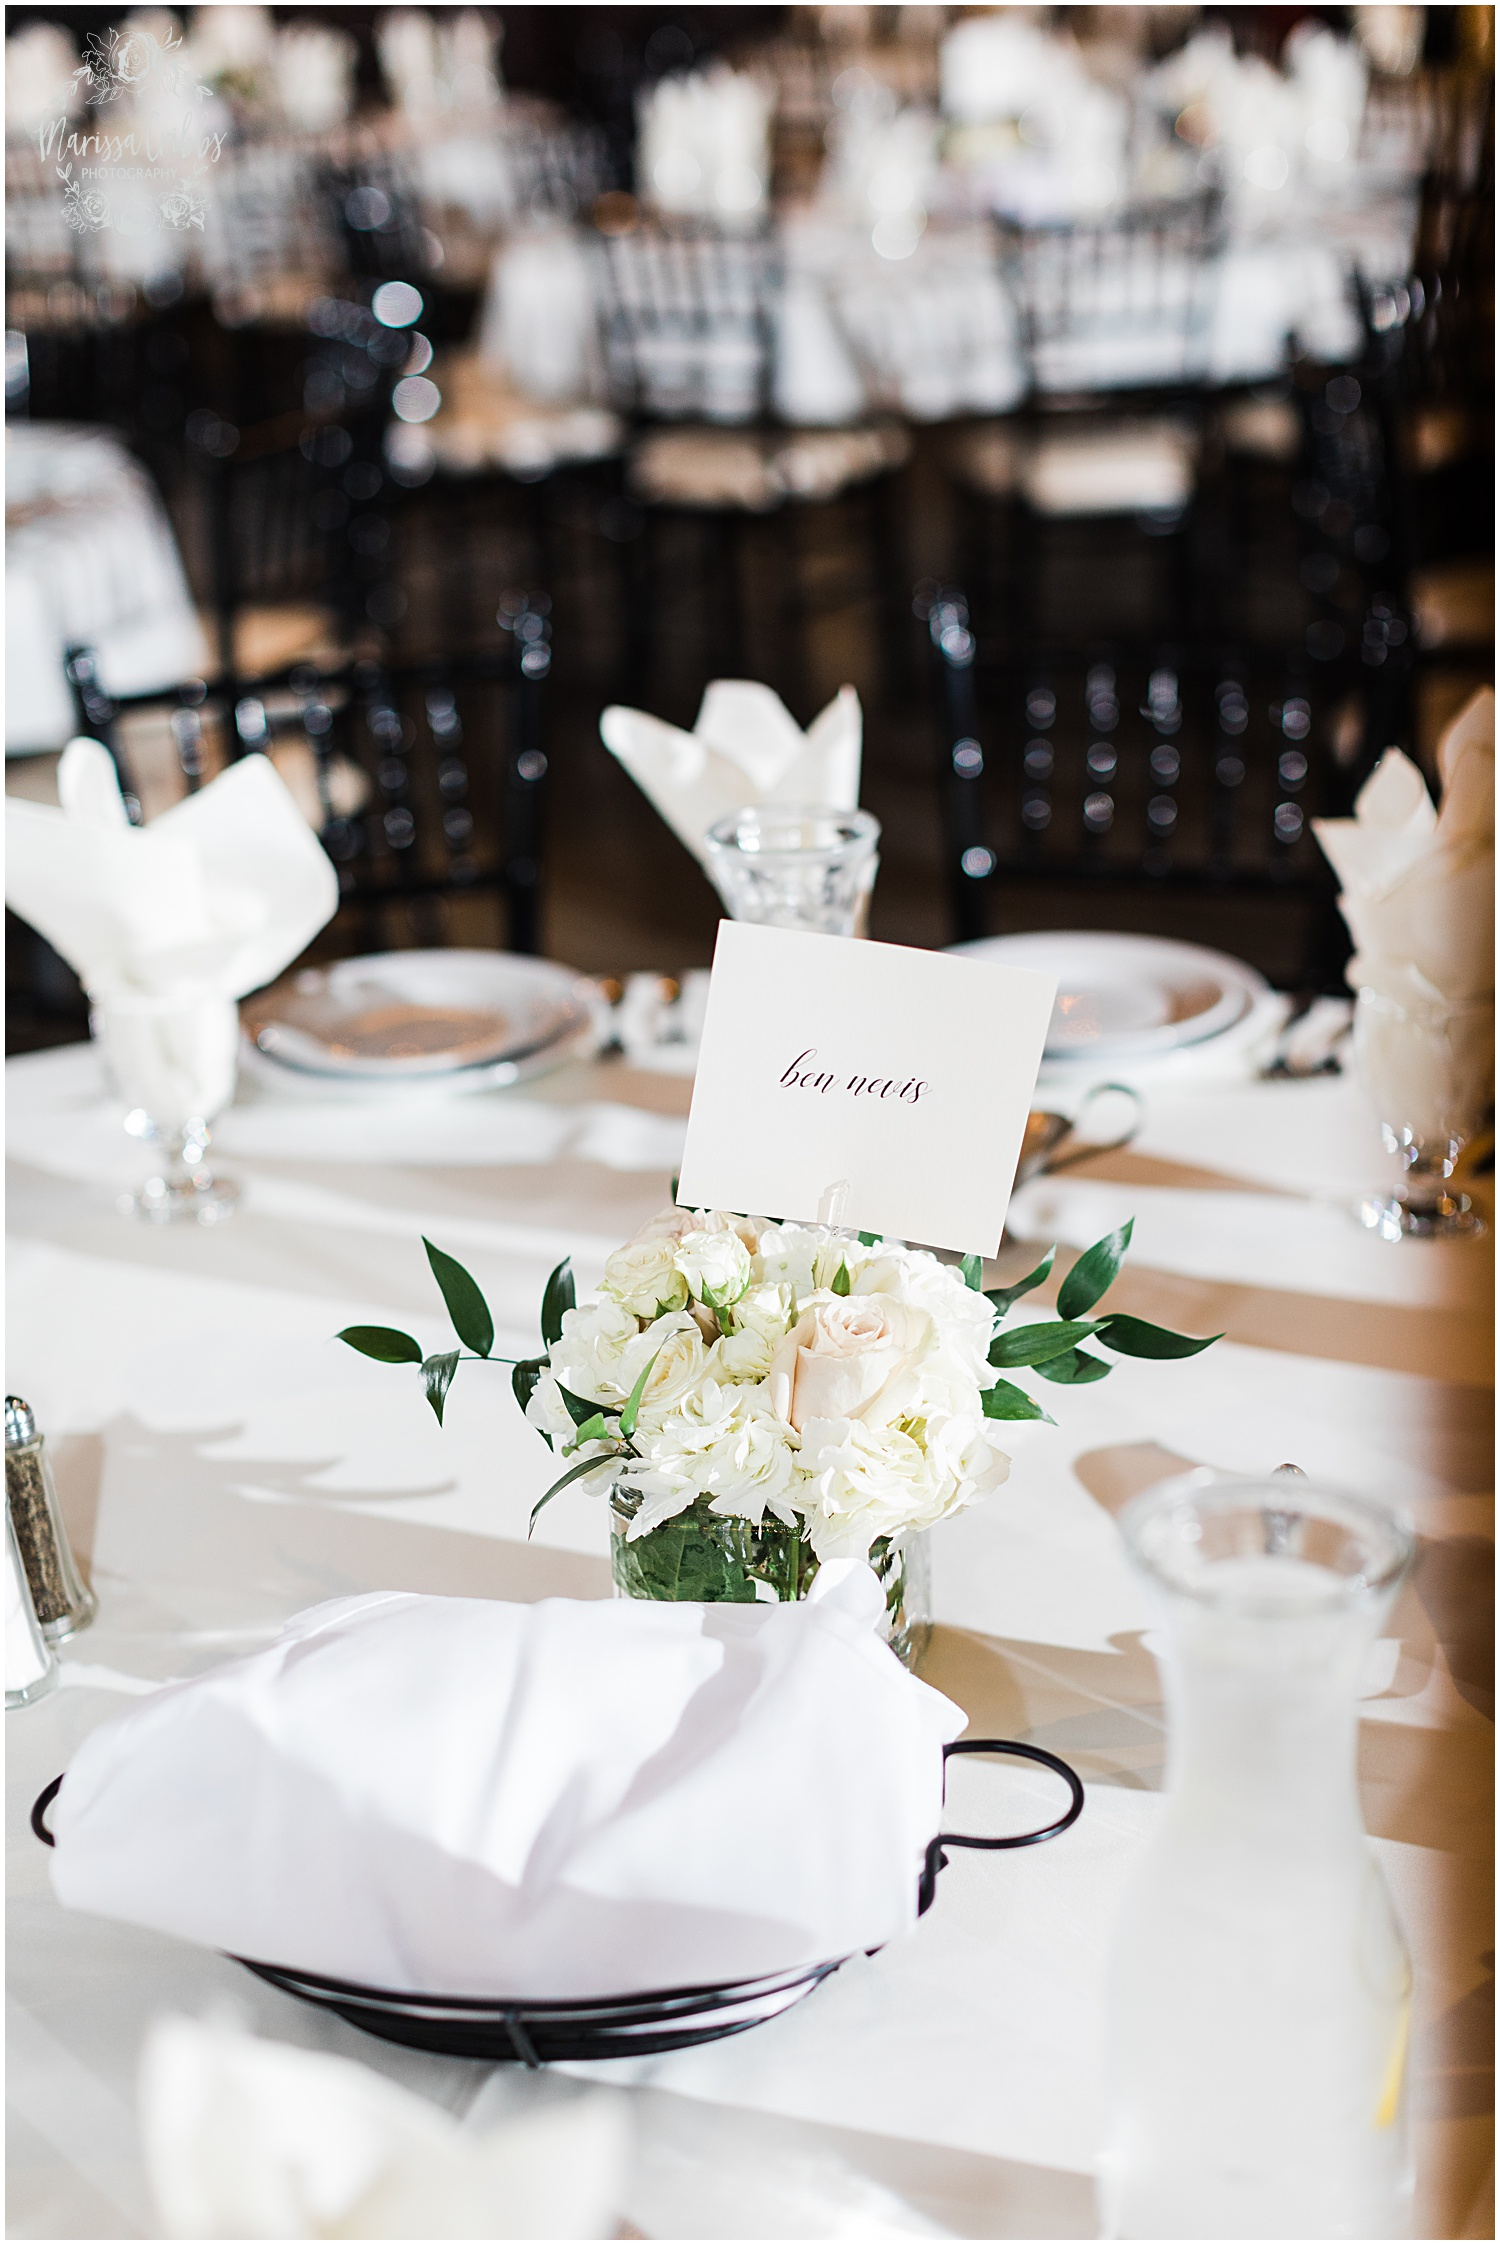 ABBY & CHARLIE WEDDING | THE HUDSON EVENT SPACE WEDDING | MARISSA CRIBBS PHOTOGRAPHY_7563.jpg